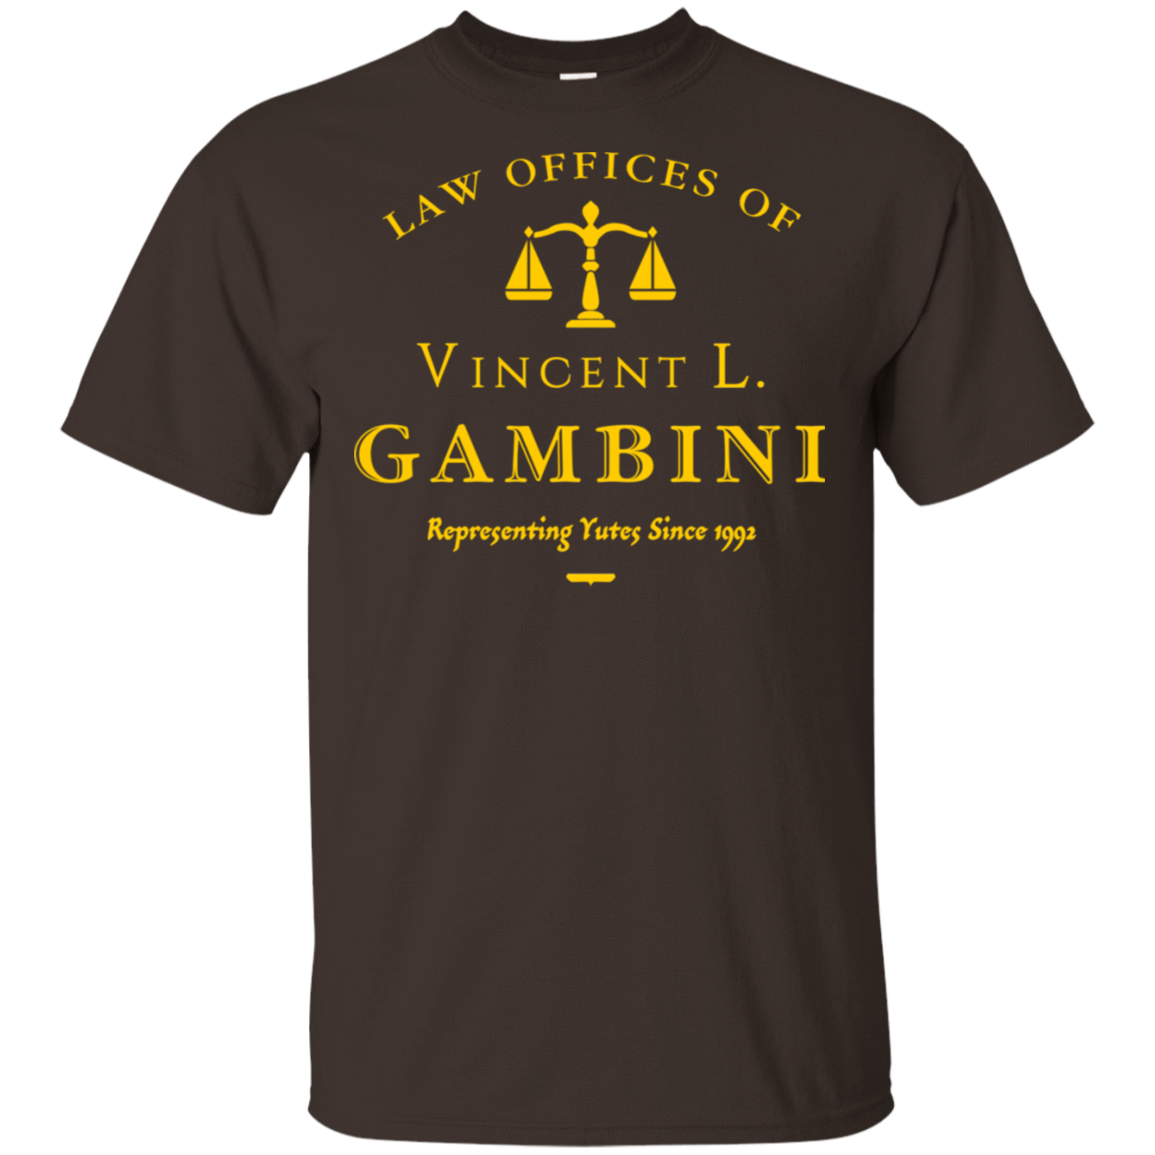 Law Offices Of Vincent L. Gambini T-Shirts, Hoodies 22-2283-77529017-12087 - Tee Ript